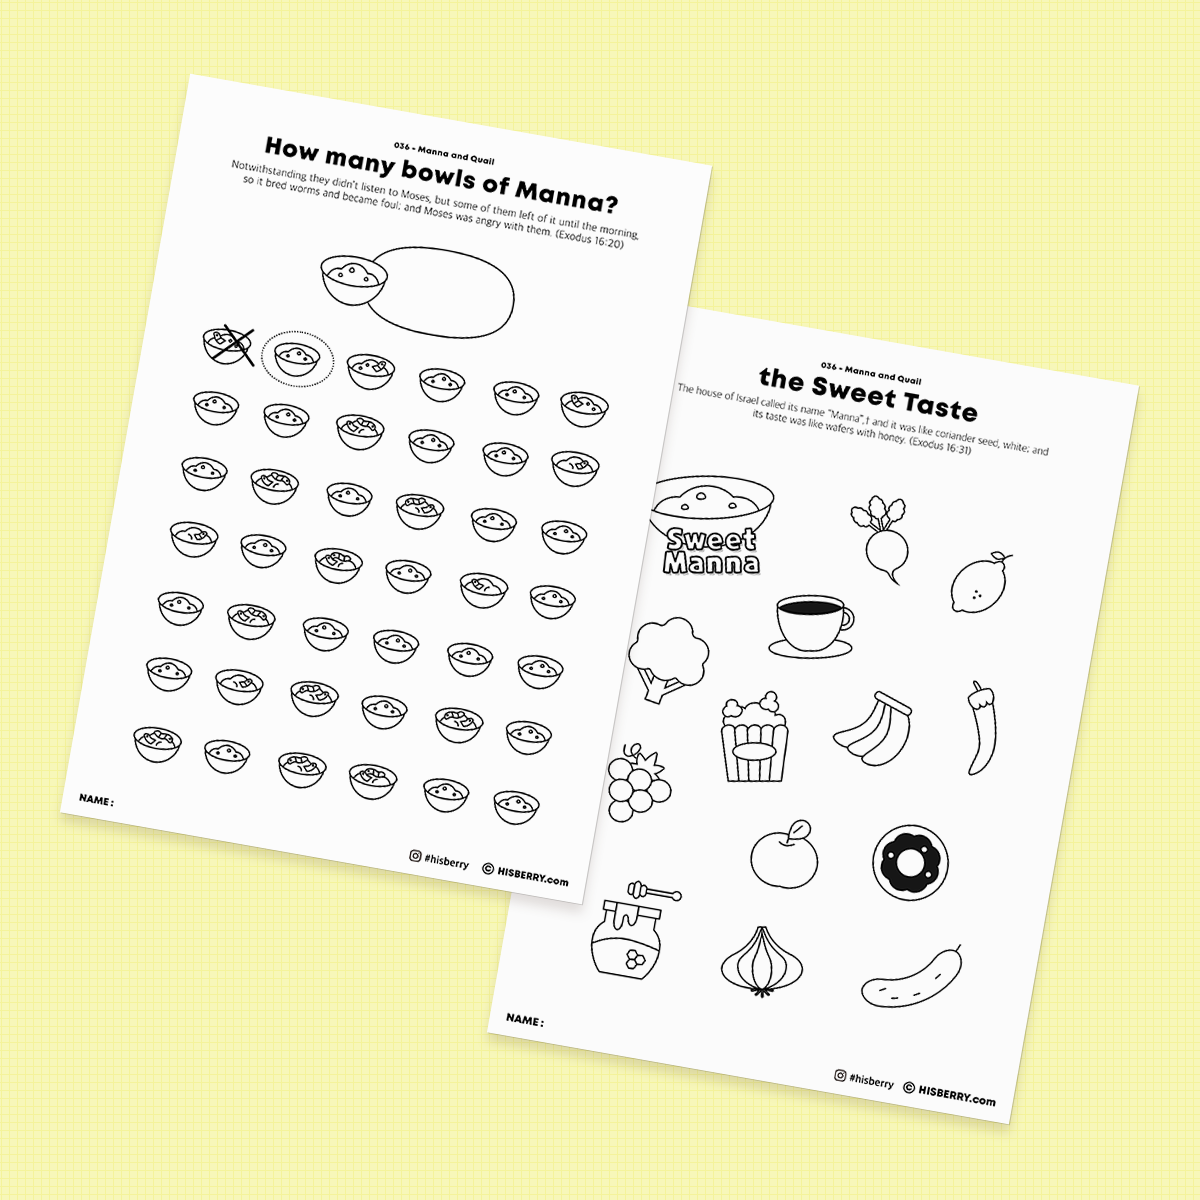 Manna-and-Quail-Bible-lesson-Activity-Printables